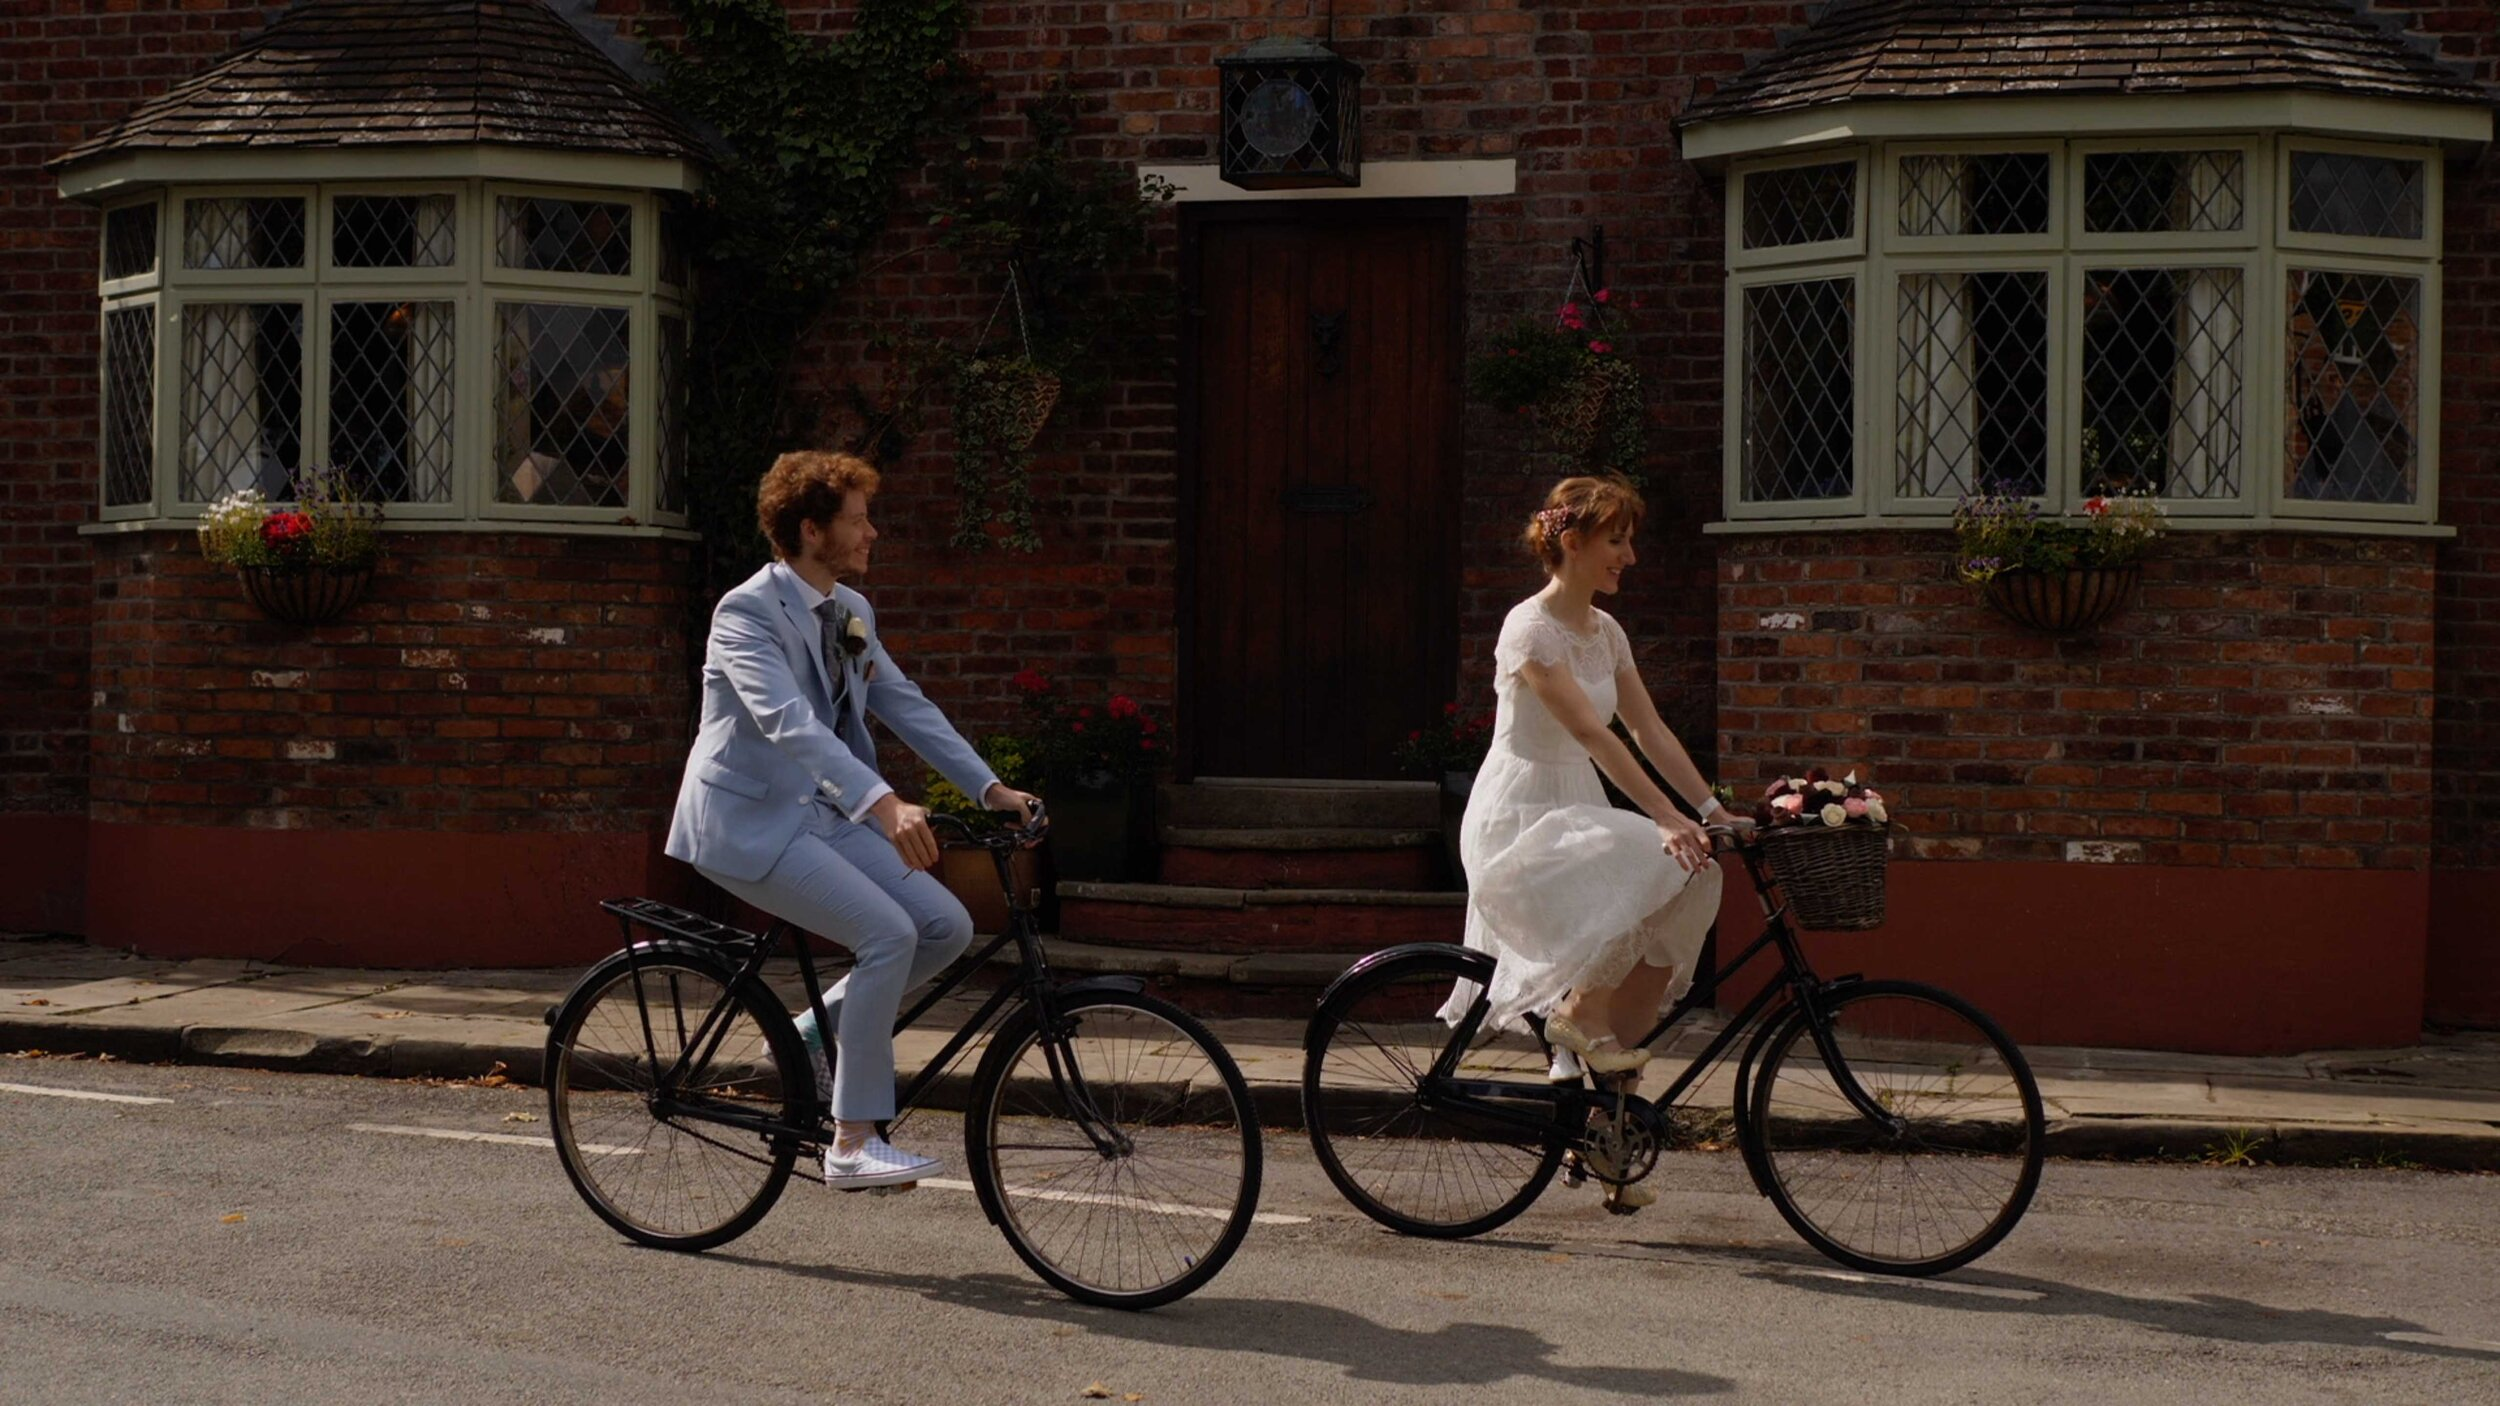 Lucy and Sam, the bride and groom, zooming along on their push bikes. Lucy is wearing a white dress, and her bike has a basket on the front, whilst Sam is wearing a sky blue suit and a smile on his face as he looks at his bride cycling alongside him.